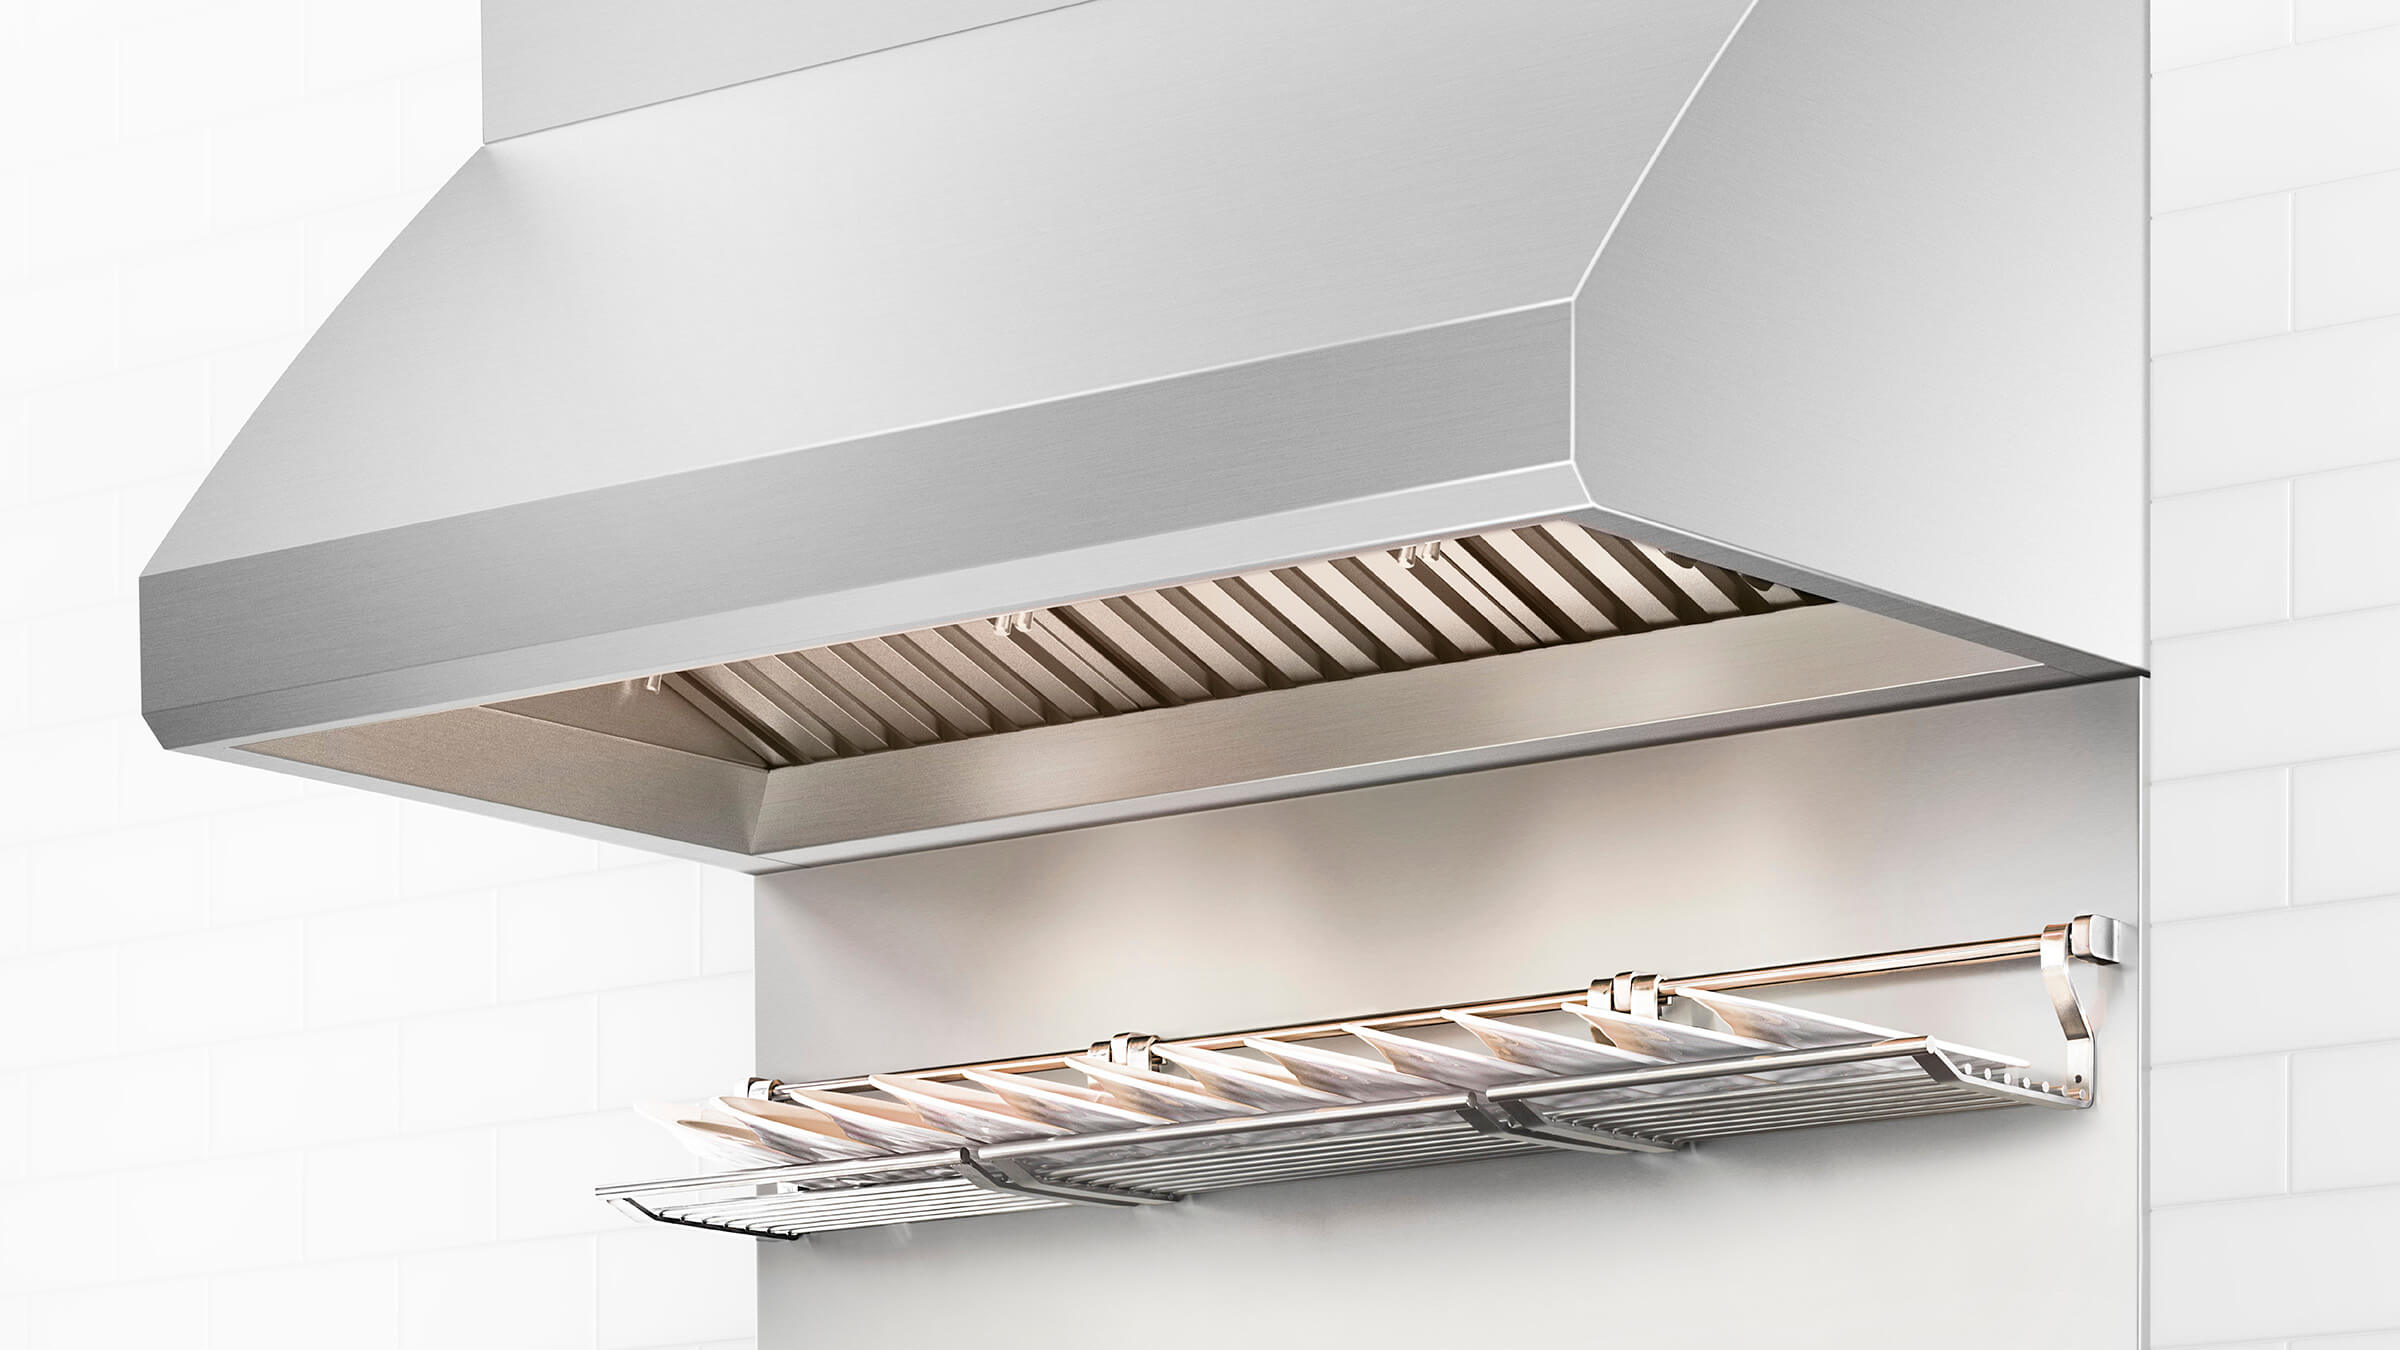 Range Hood With Heat Lamps Bindu Bhatia Astrology